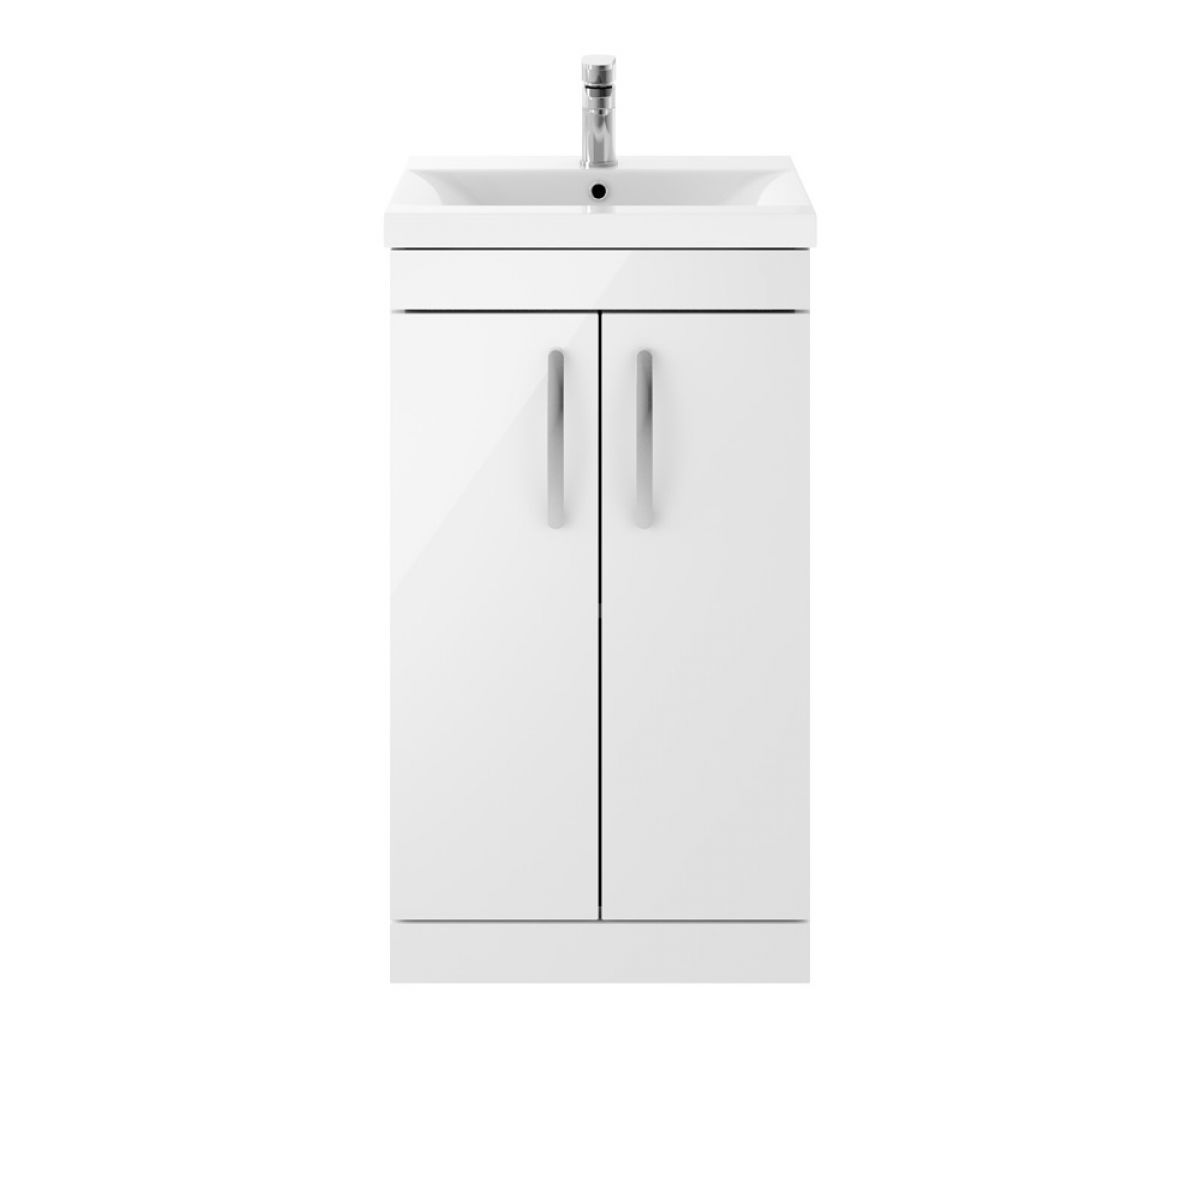 Premier Athena Gloss White 2 Door Floor Standing Vanity Unit 500mm with Mid Edge Basin